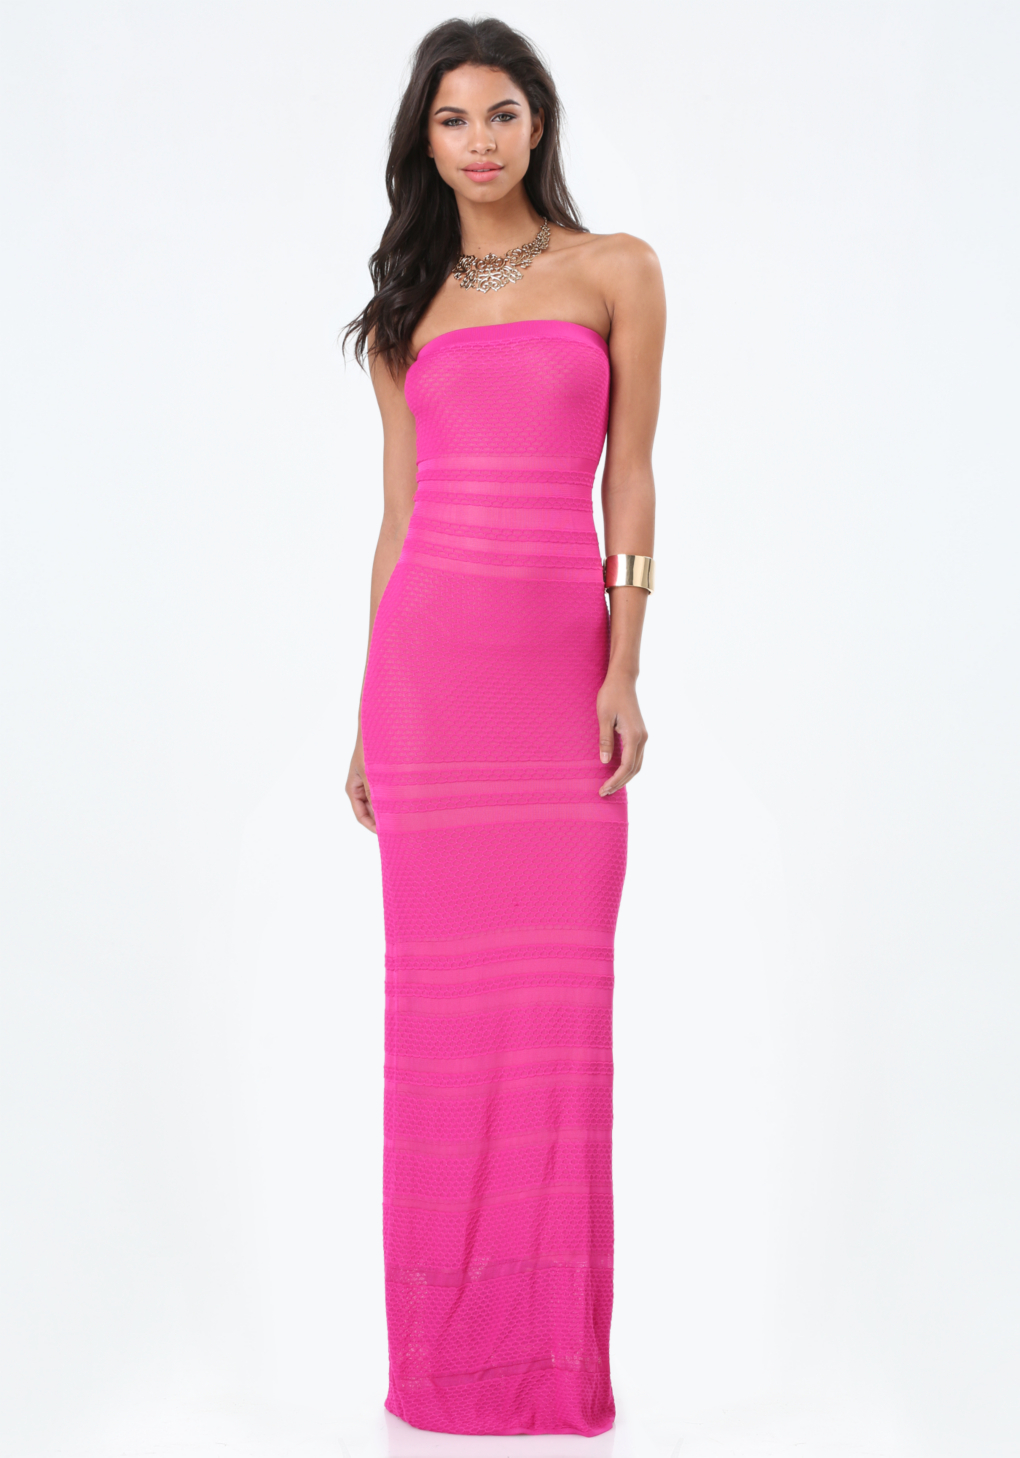 Lyst Bebe Sheer Strapless Maxi Dress In Pink